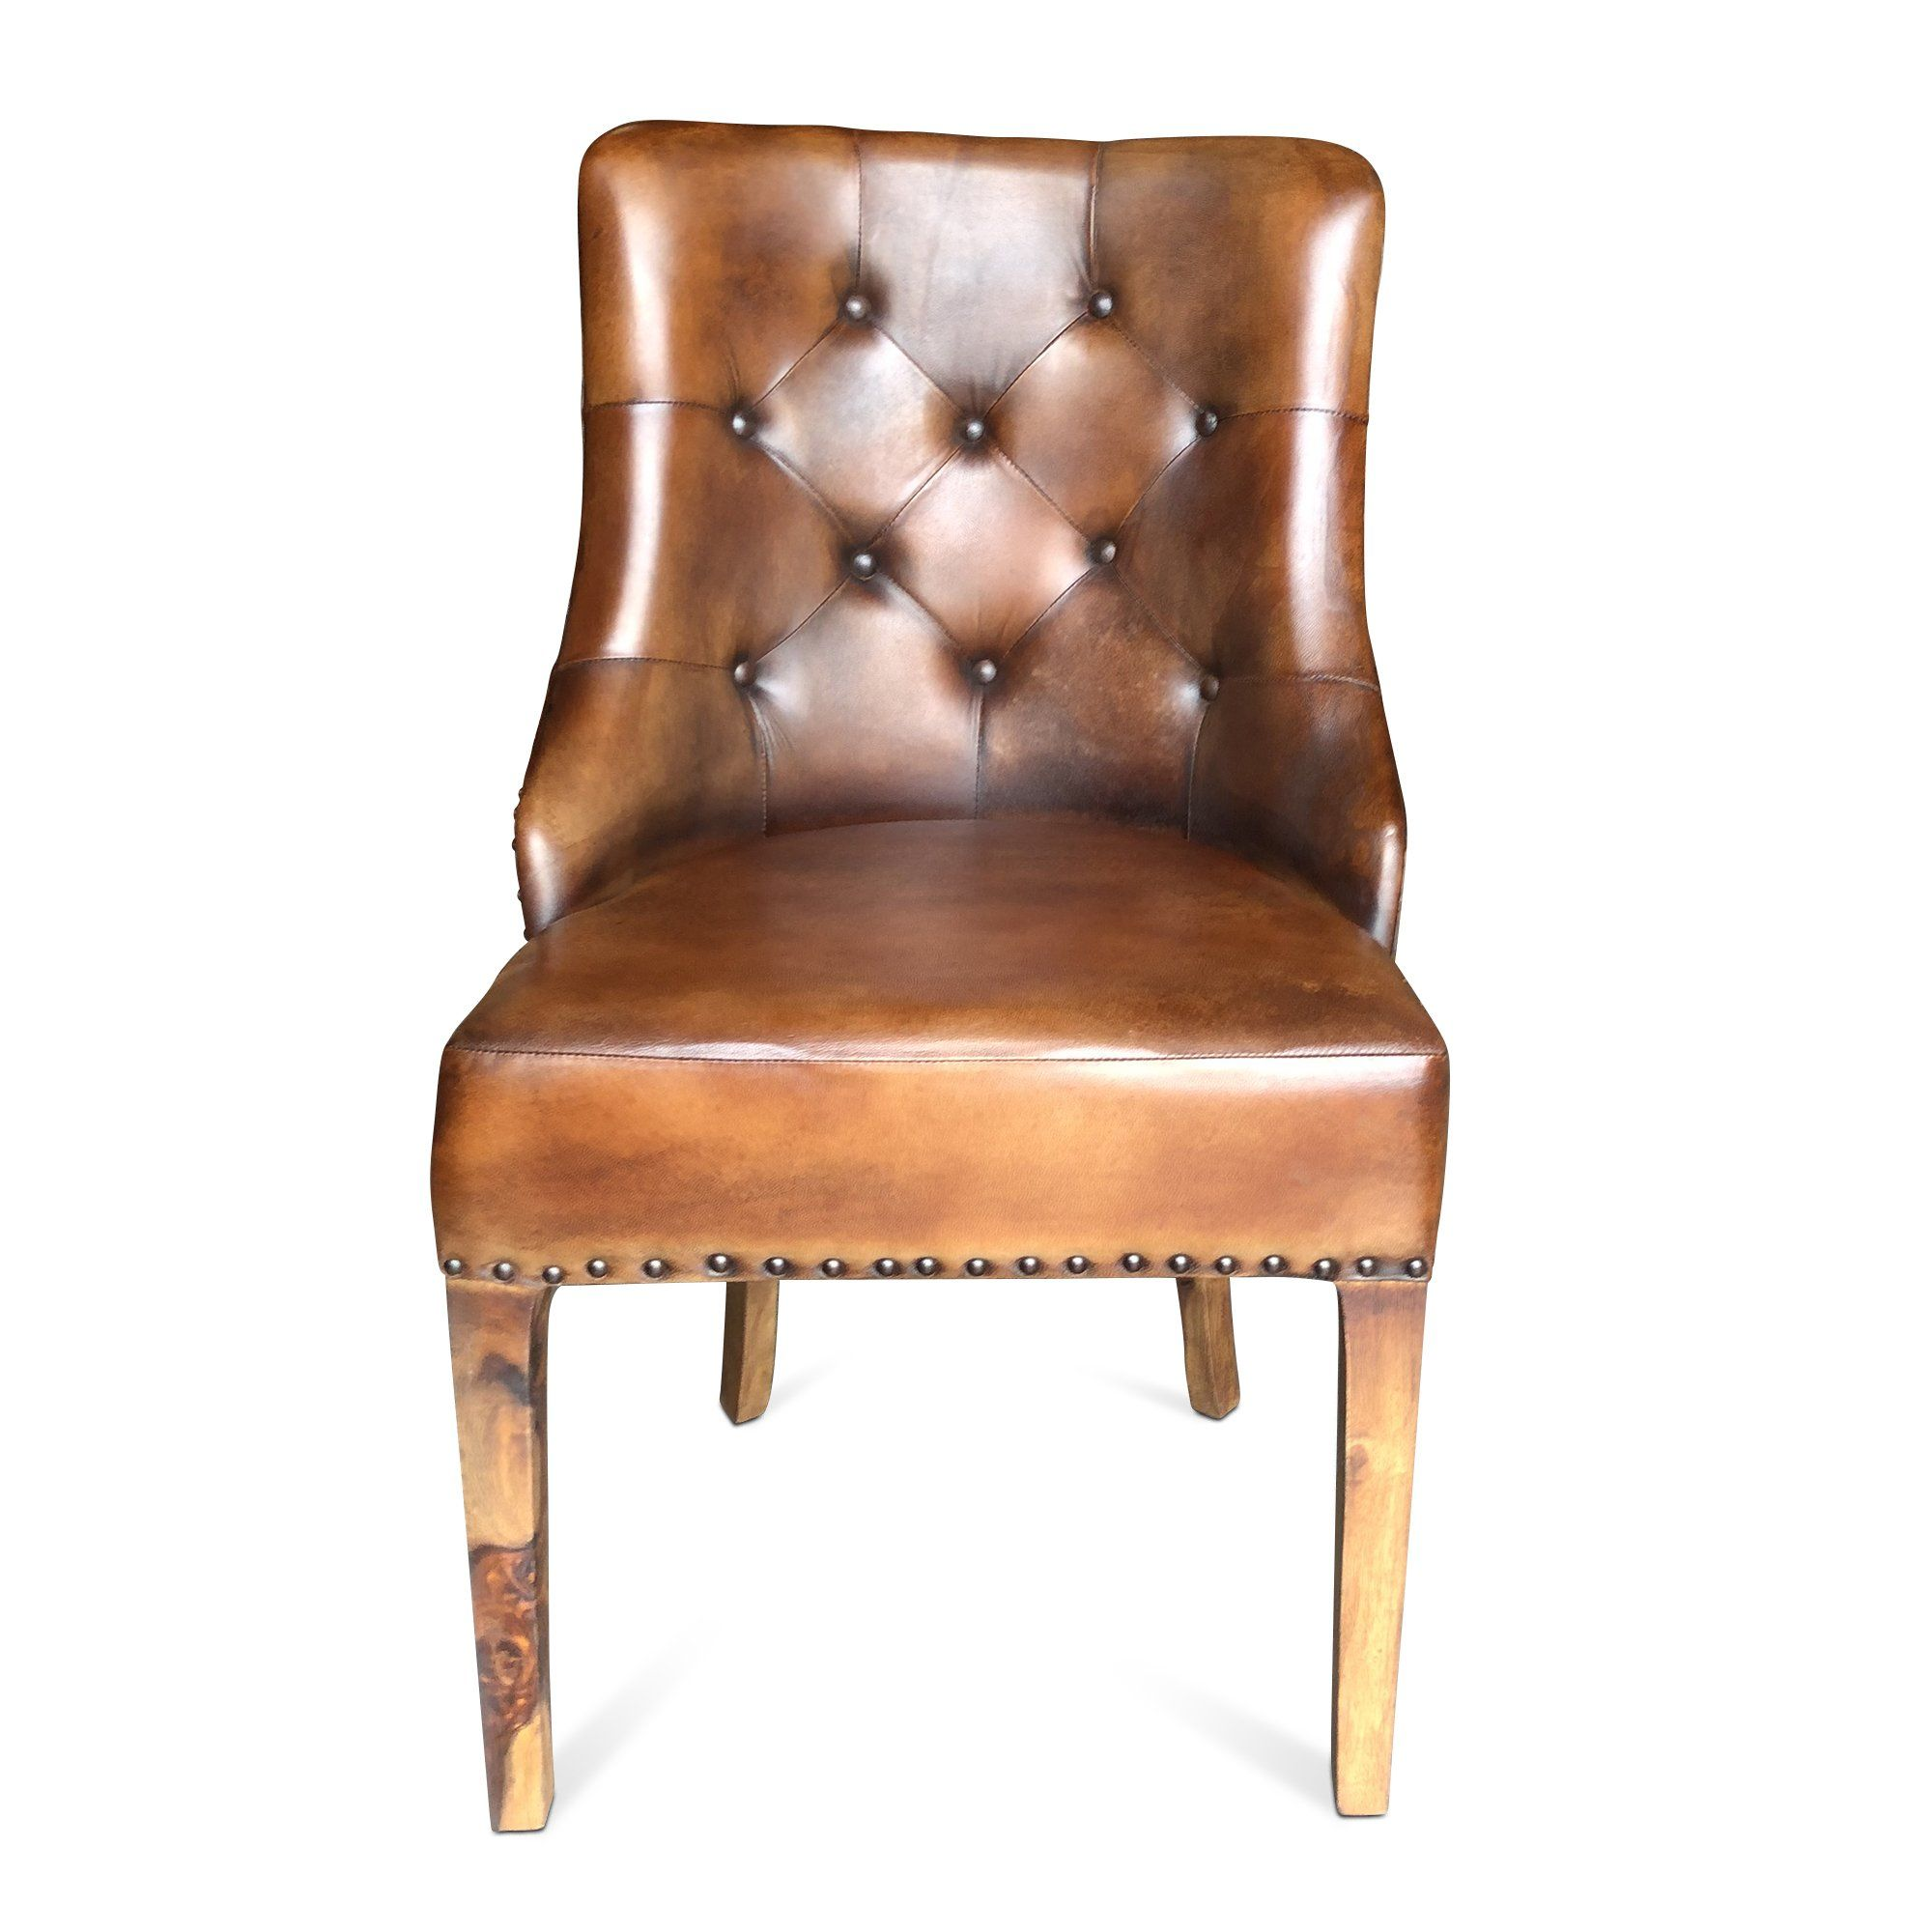 Industrial Rustic Brown Leather Tufted Arm Chair - Dining ...